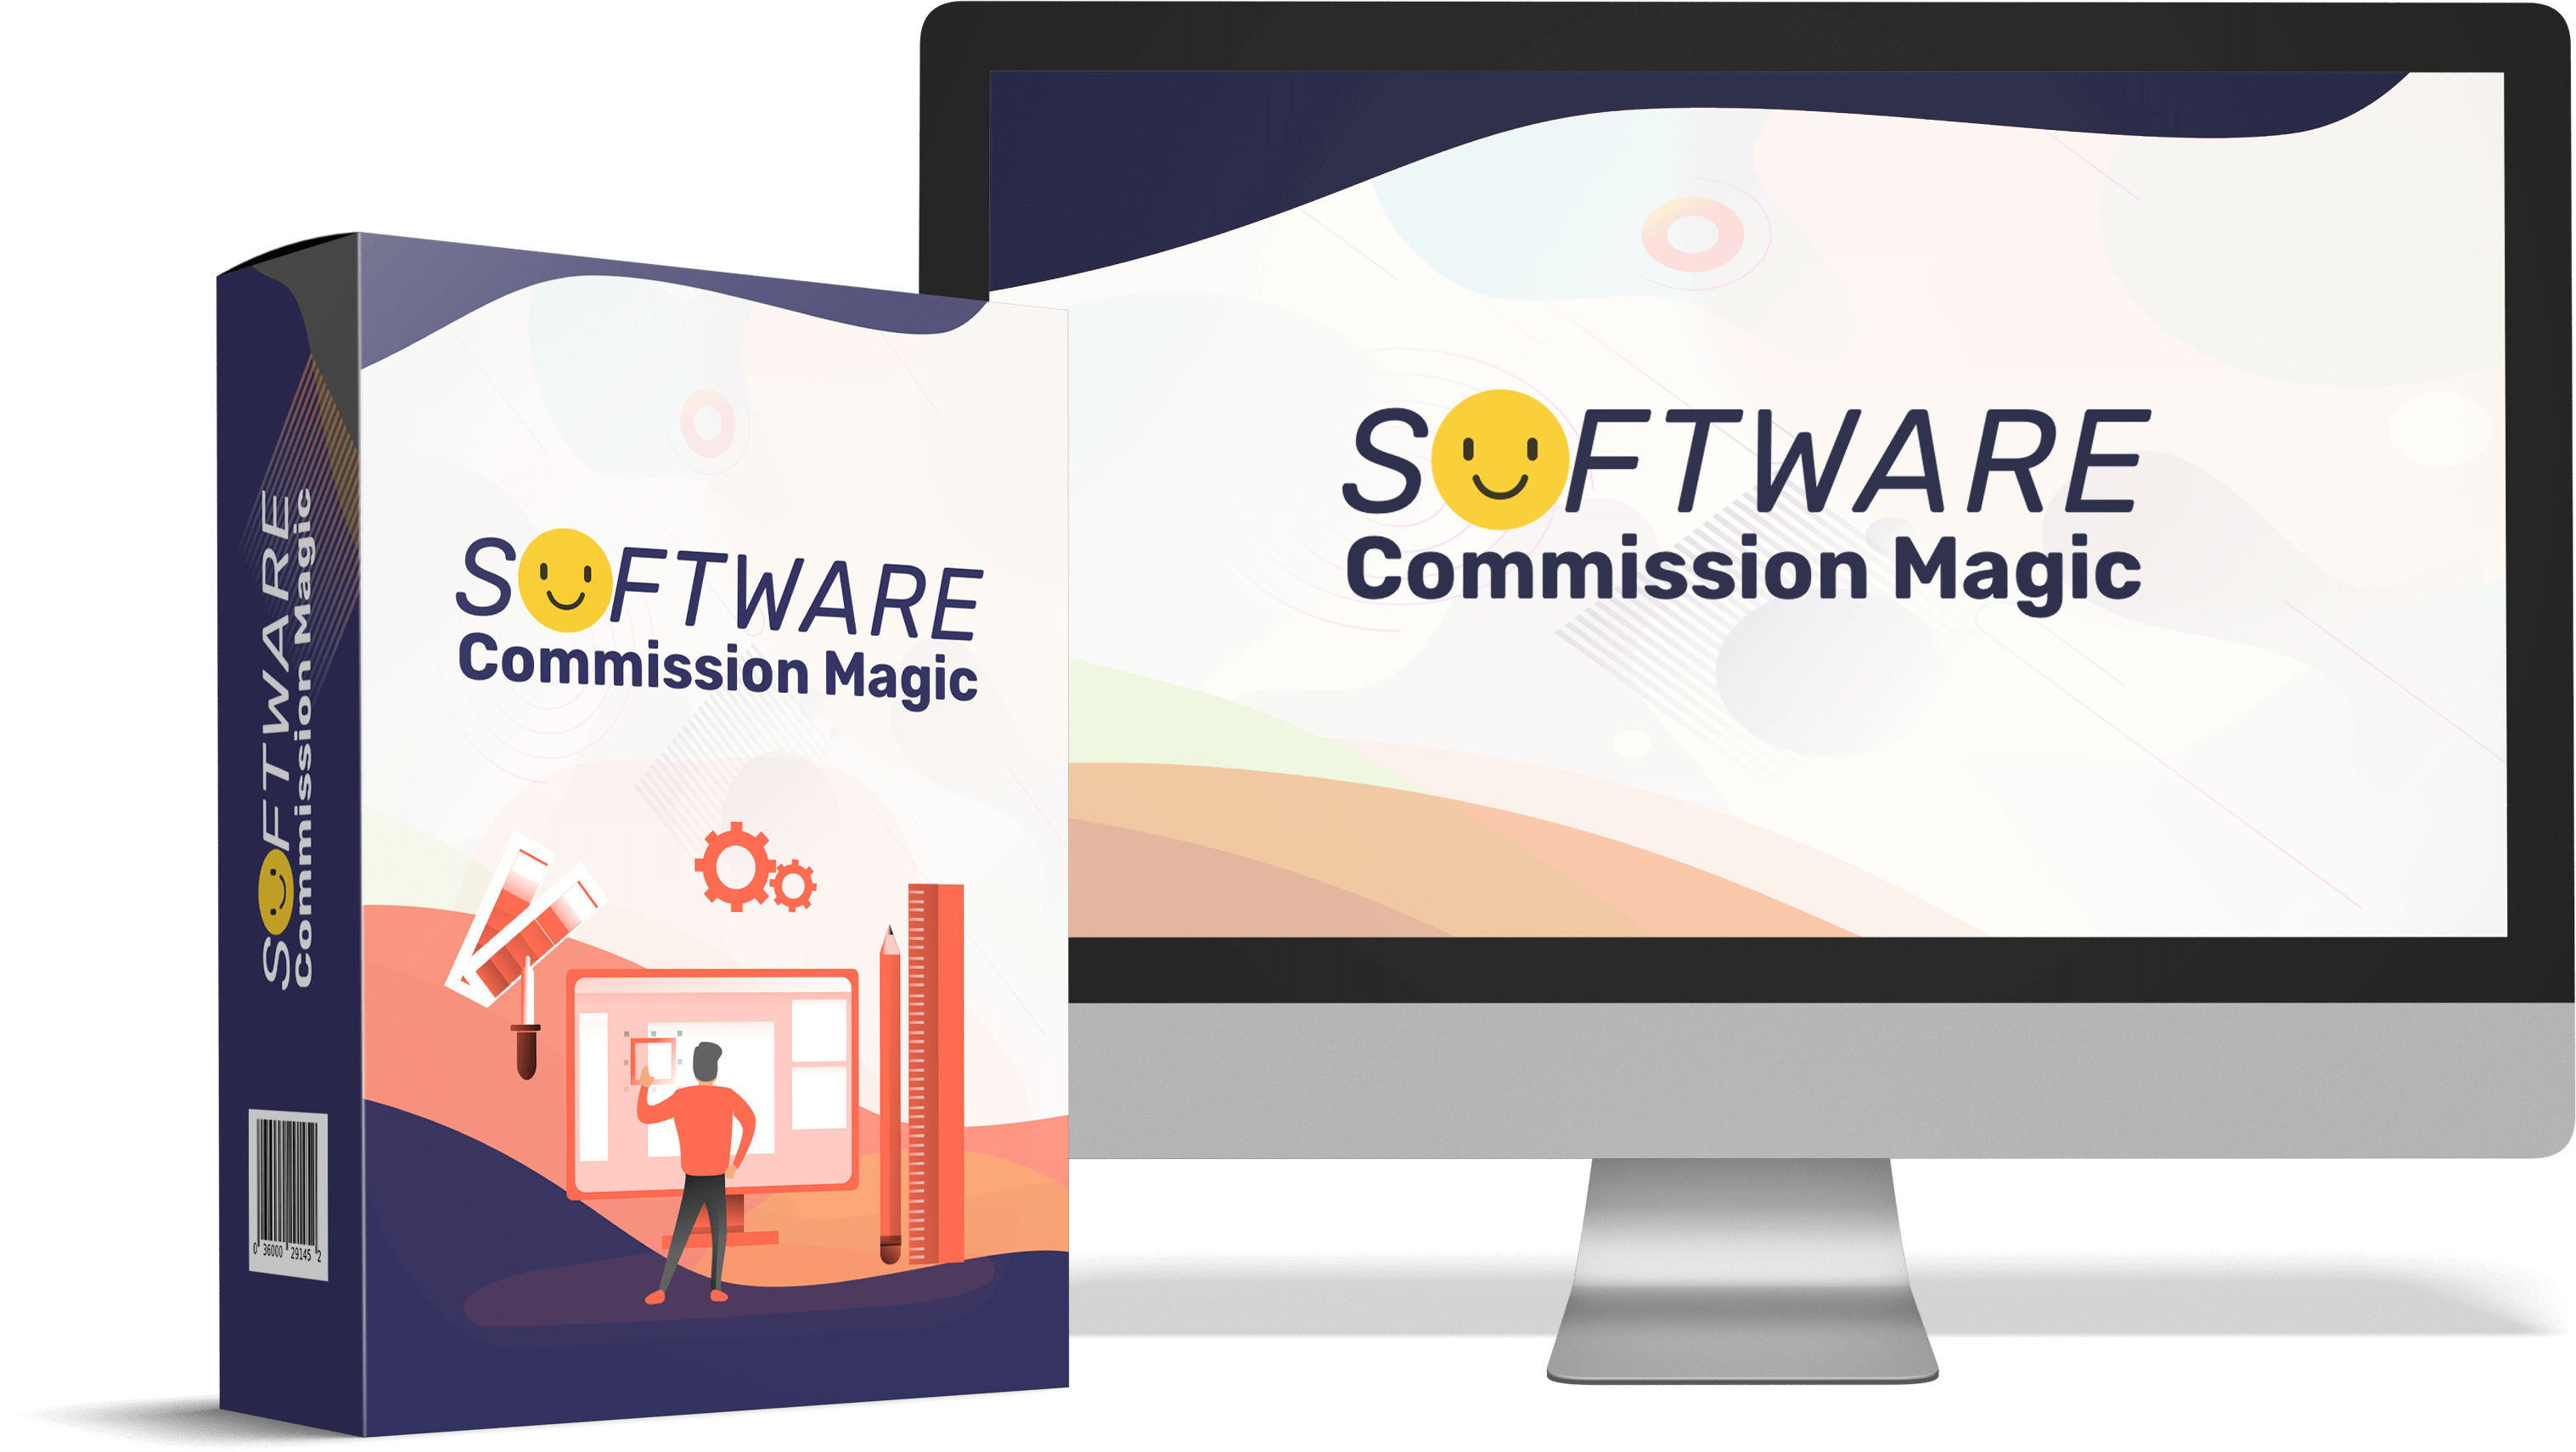 Software Commission Magic